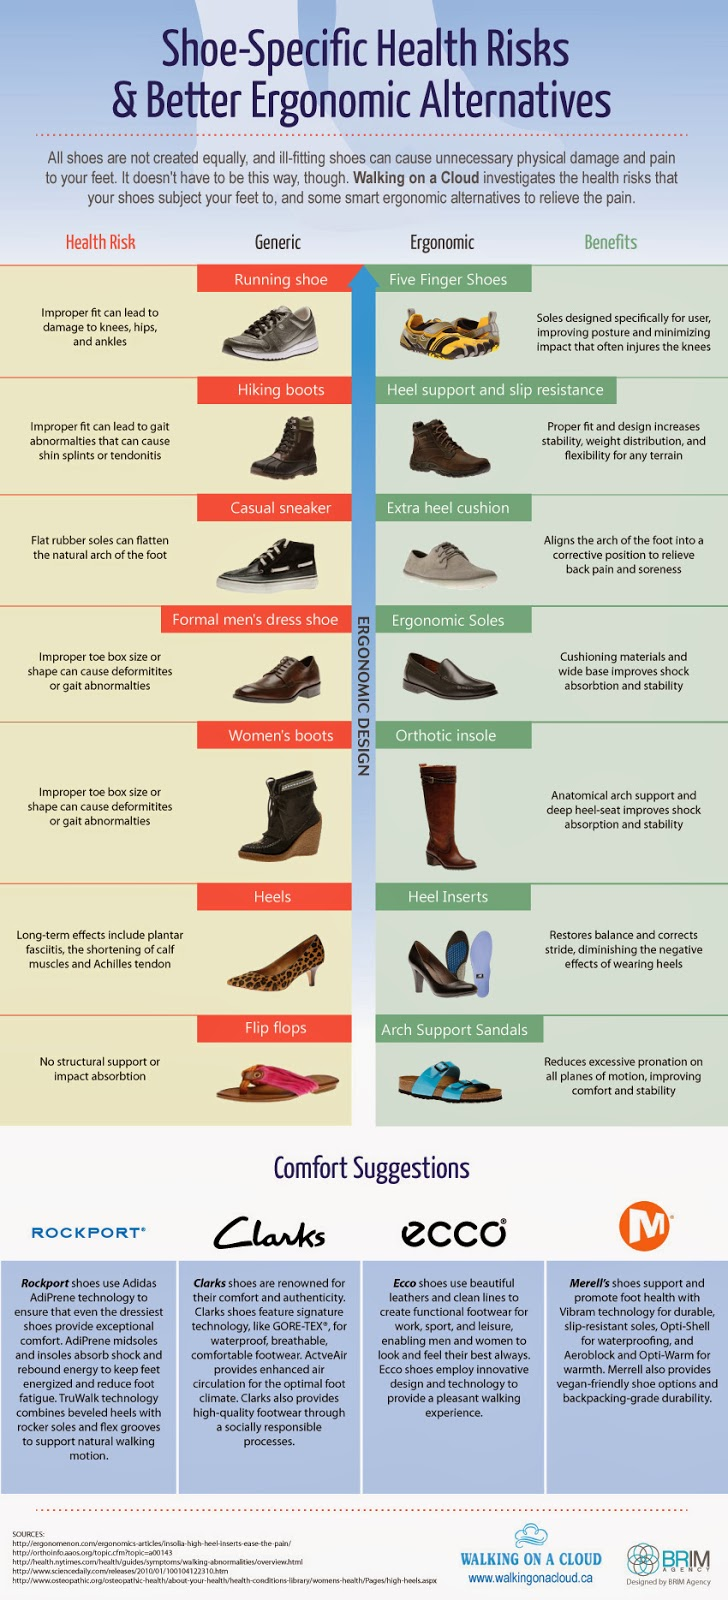 http://the-walking-shoe-blog.blogspot.com/2013/11/shoe-specific-health-risks-and-better.html